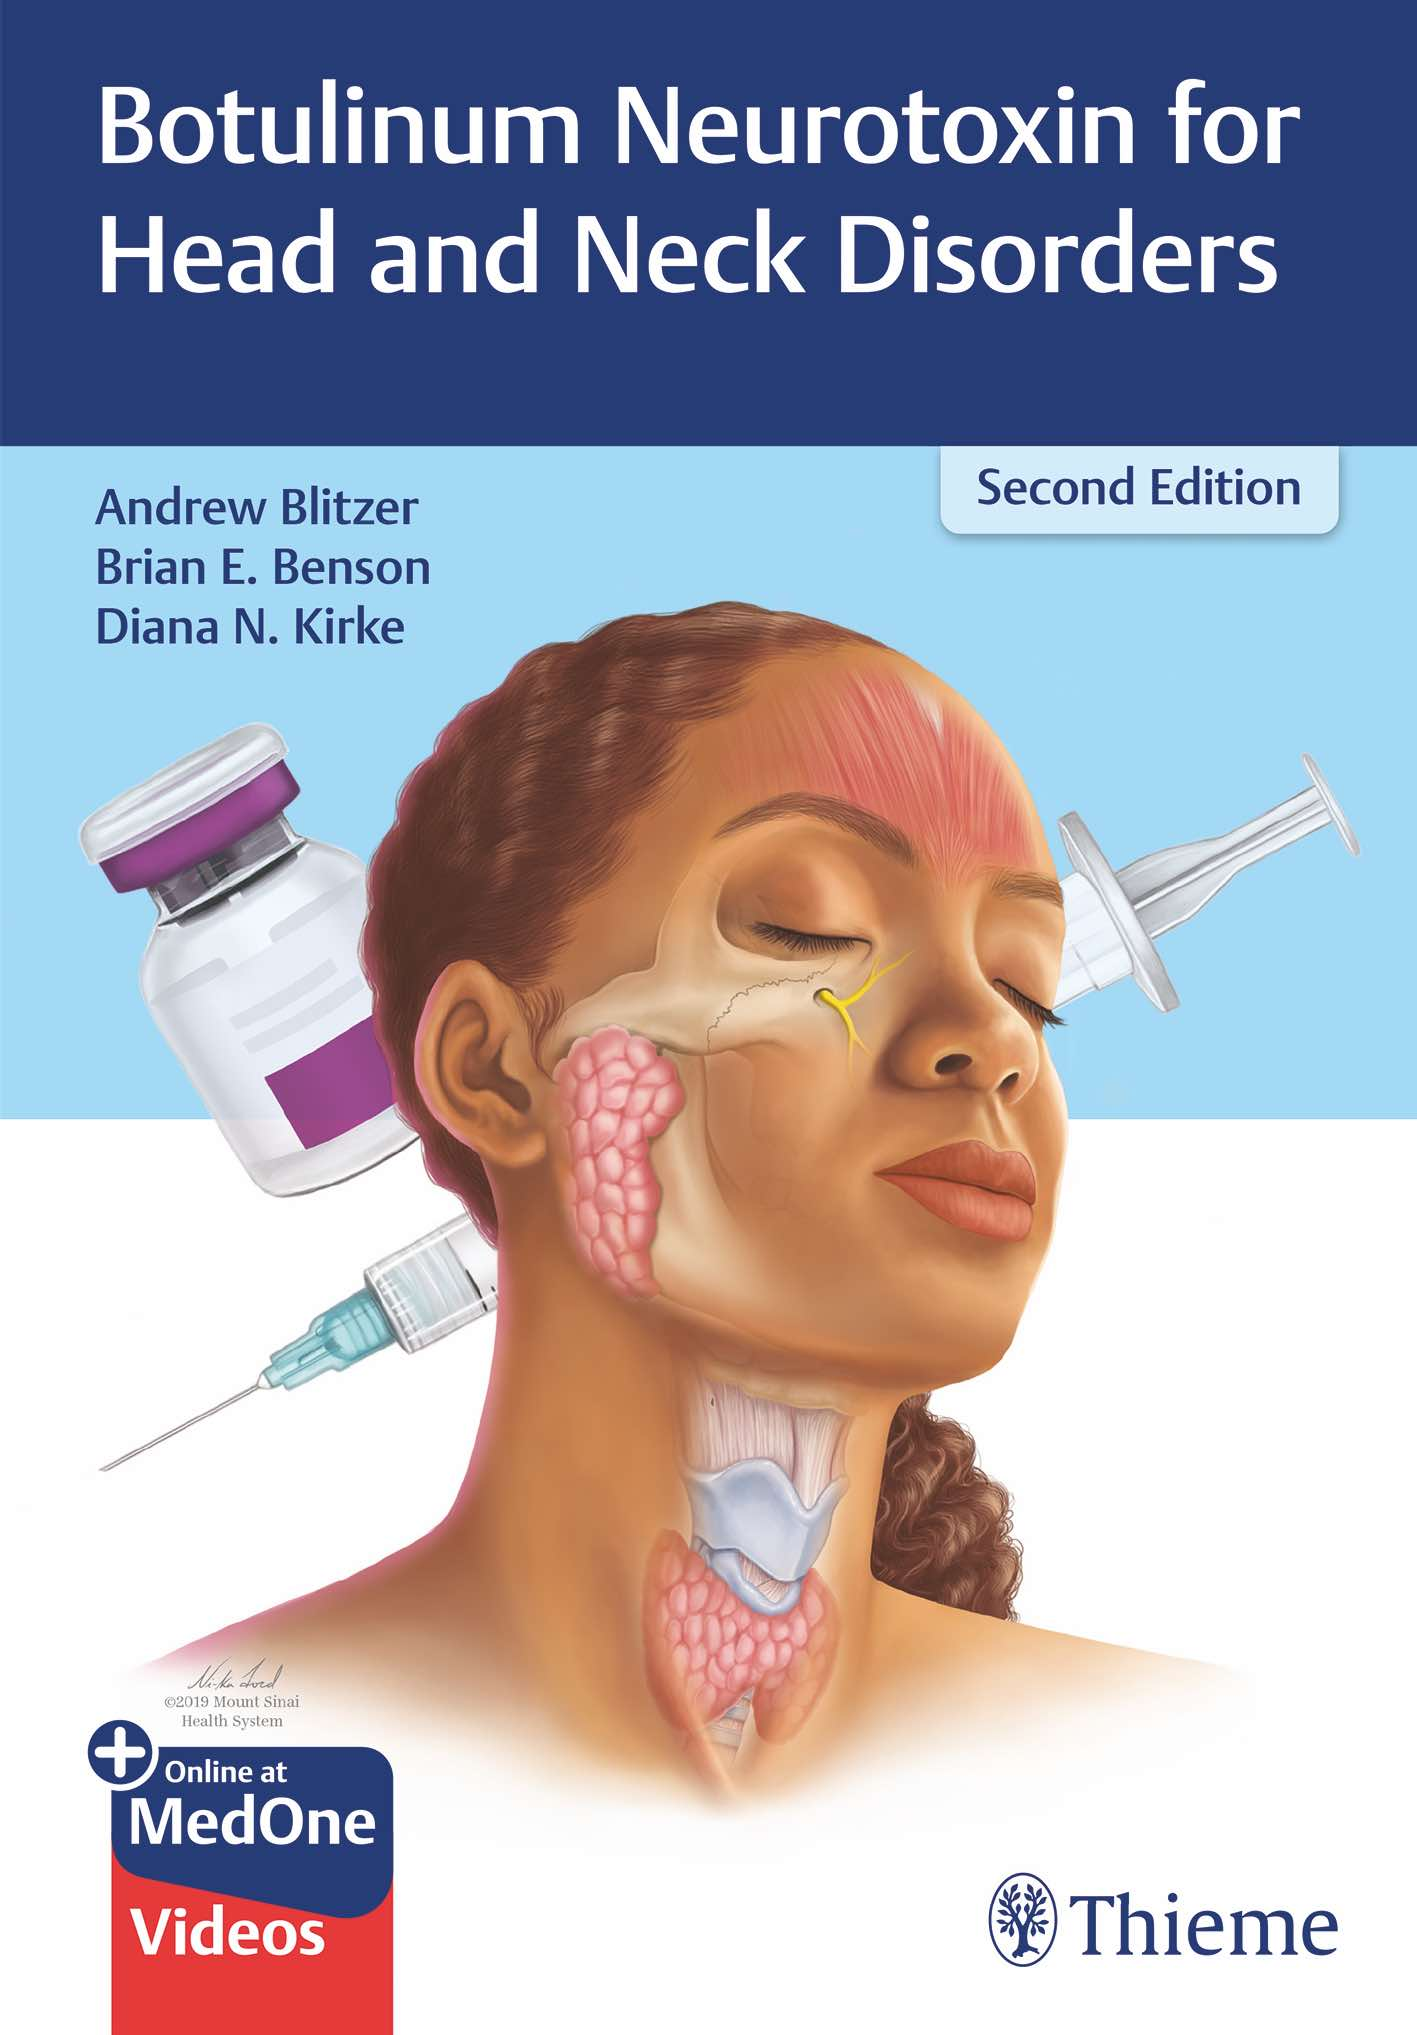 Botulinum Neurotoxin for Head and Neck Disorders, 2nd edn